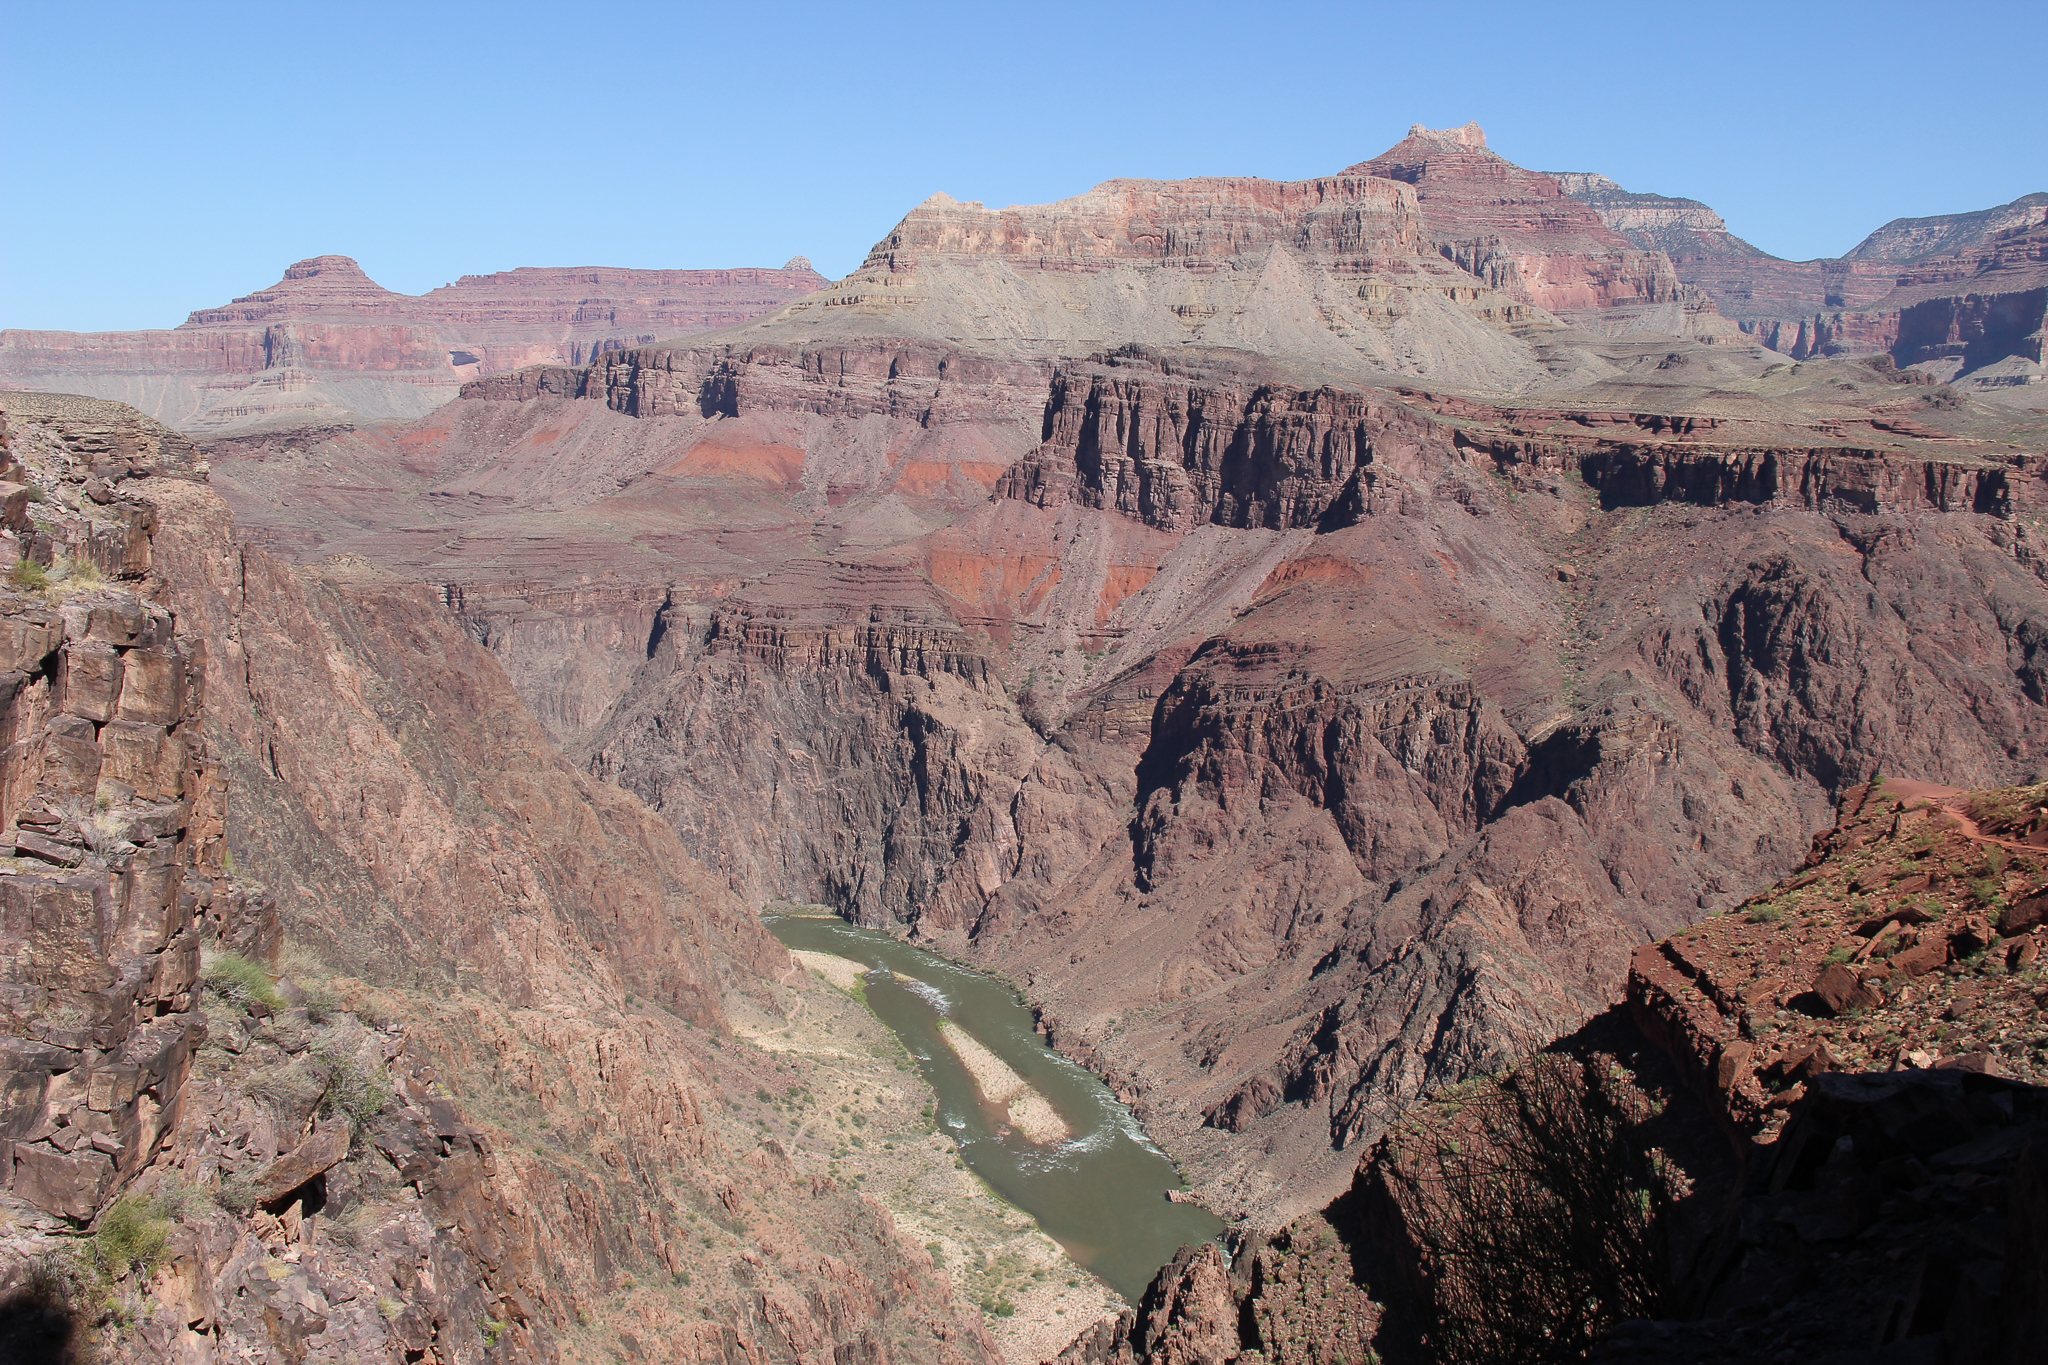 The Colorado River lies far below this outlook along the South Kaibab Trail—a seven-mile descent into the Grand Canyon.